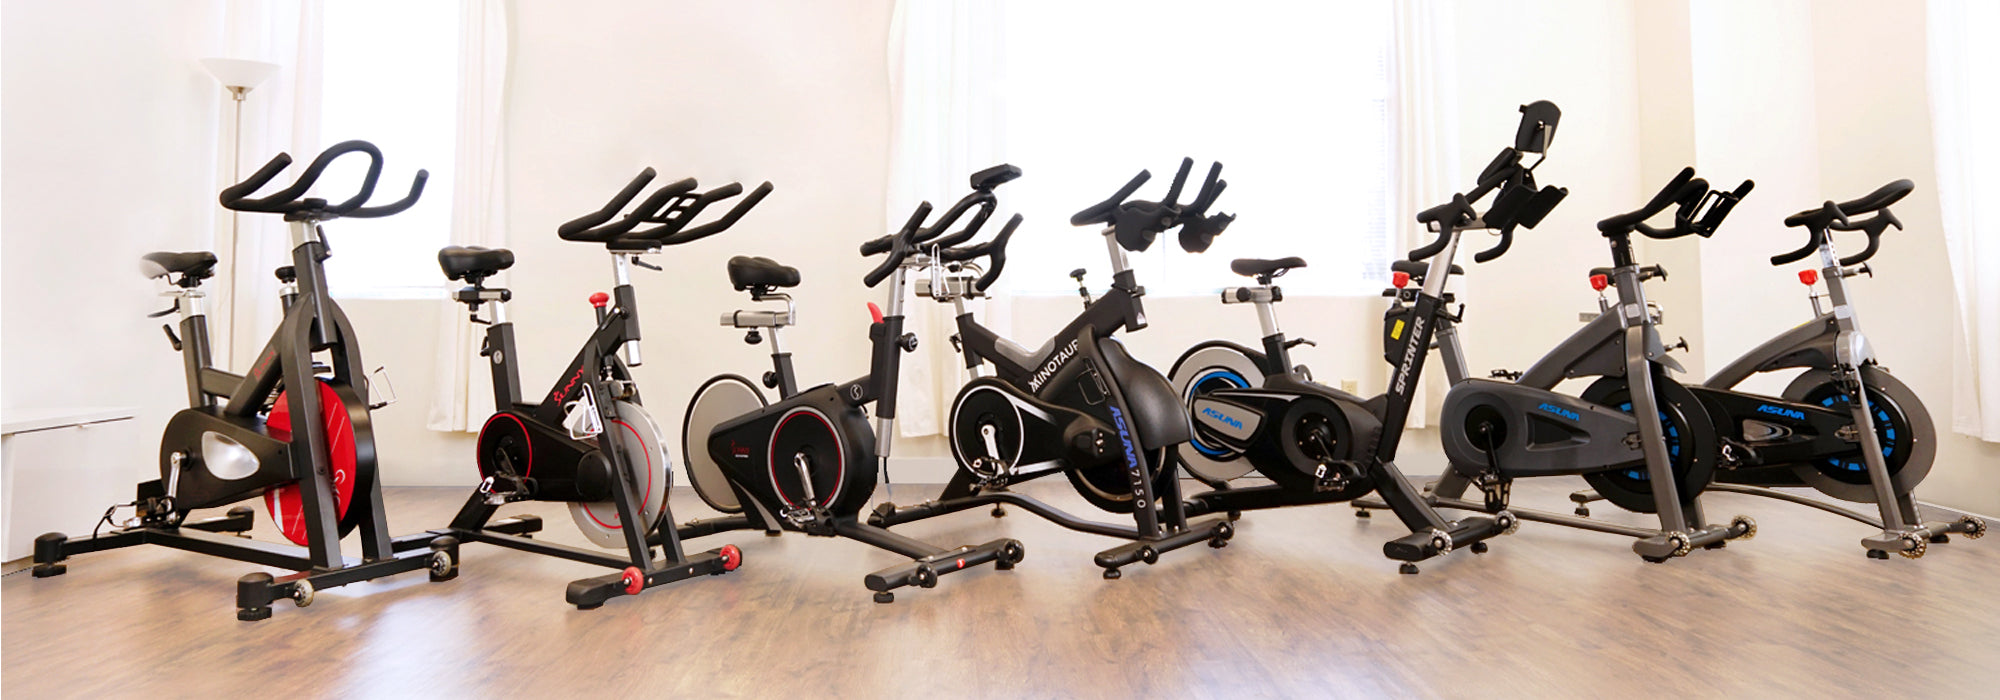 Magnetic exercise bike line by Sunny Health and Fitness